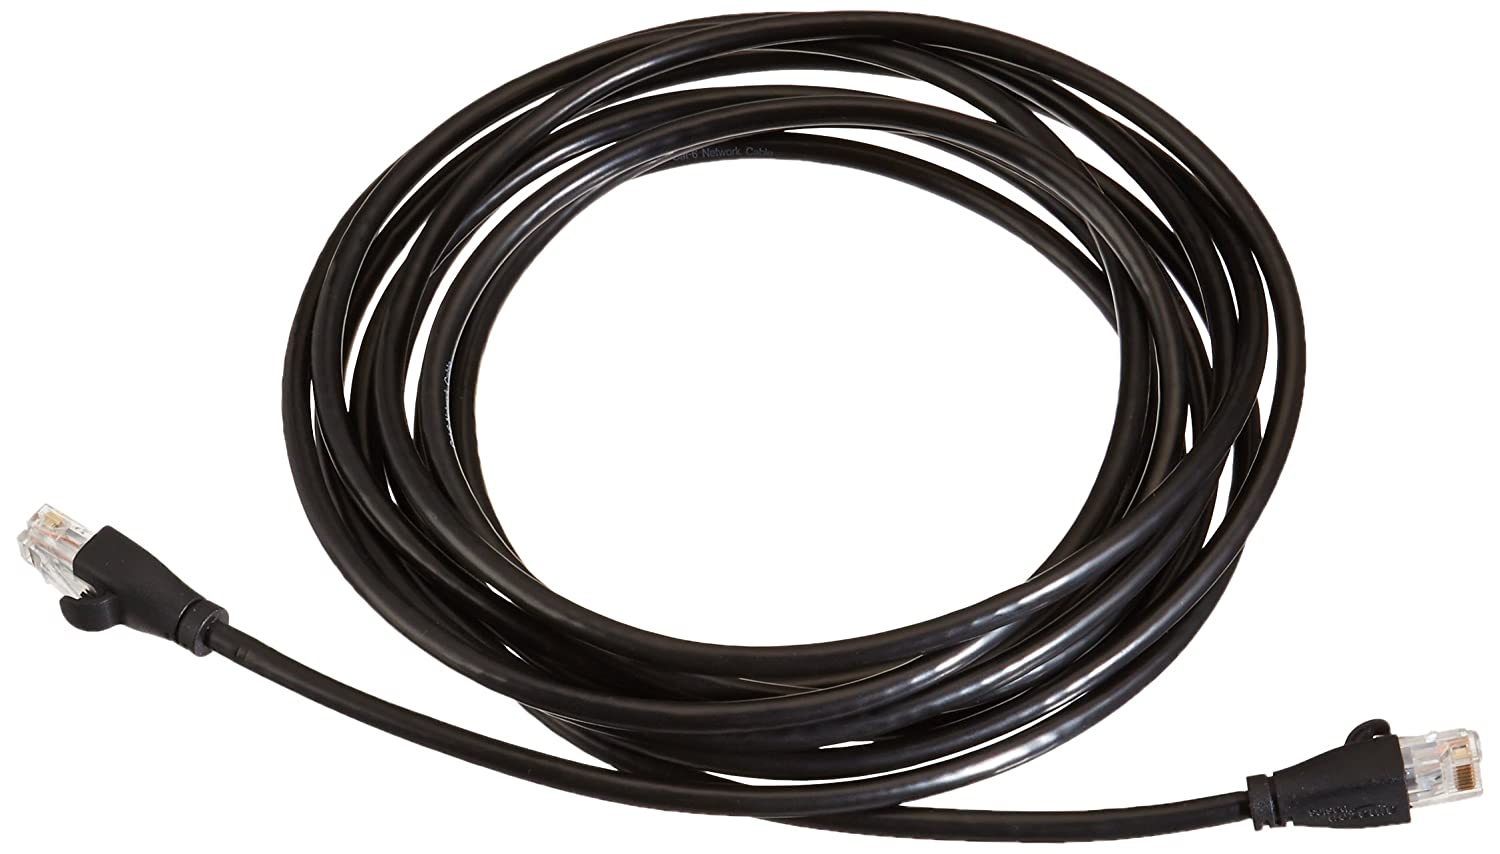 Buy Amazonbasics Rj45 Cat 6 Ethernet Patch Lan Cable Wiring On Systems Cat5 Cat5e Cat6 Cat6e Cat7 What Earth 14feet 426 Meters Black Online At Low Prices In India Reviews Ratings